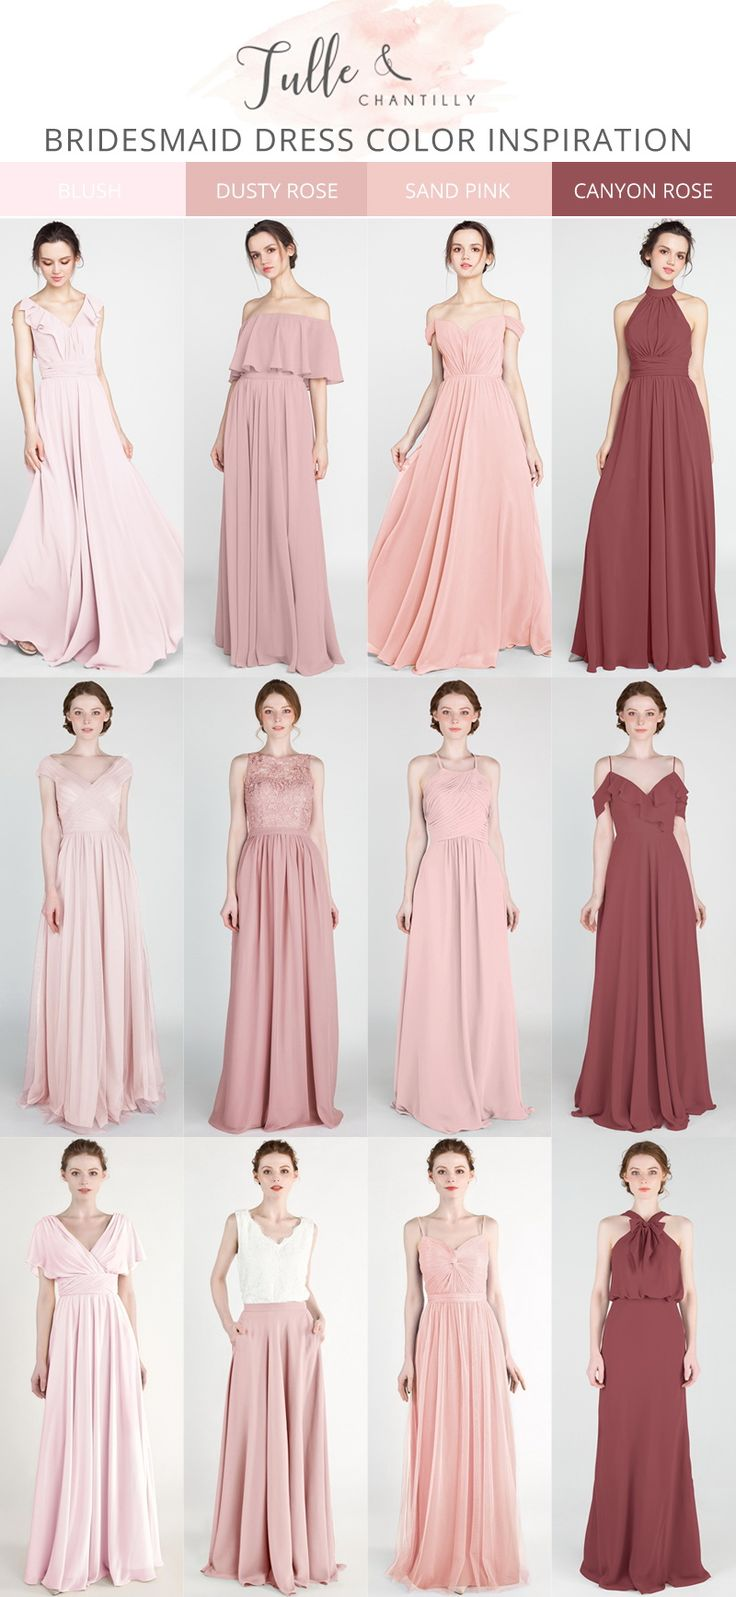 blush, dusty rose, sand pink and canyon rose mismatched bridesmaid dresses #wed …